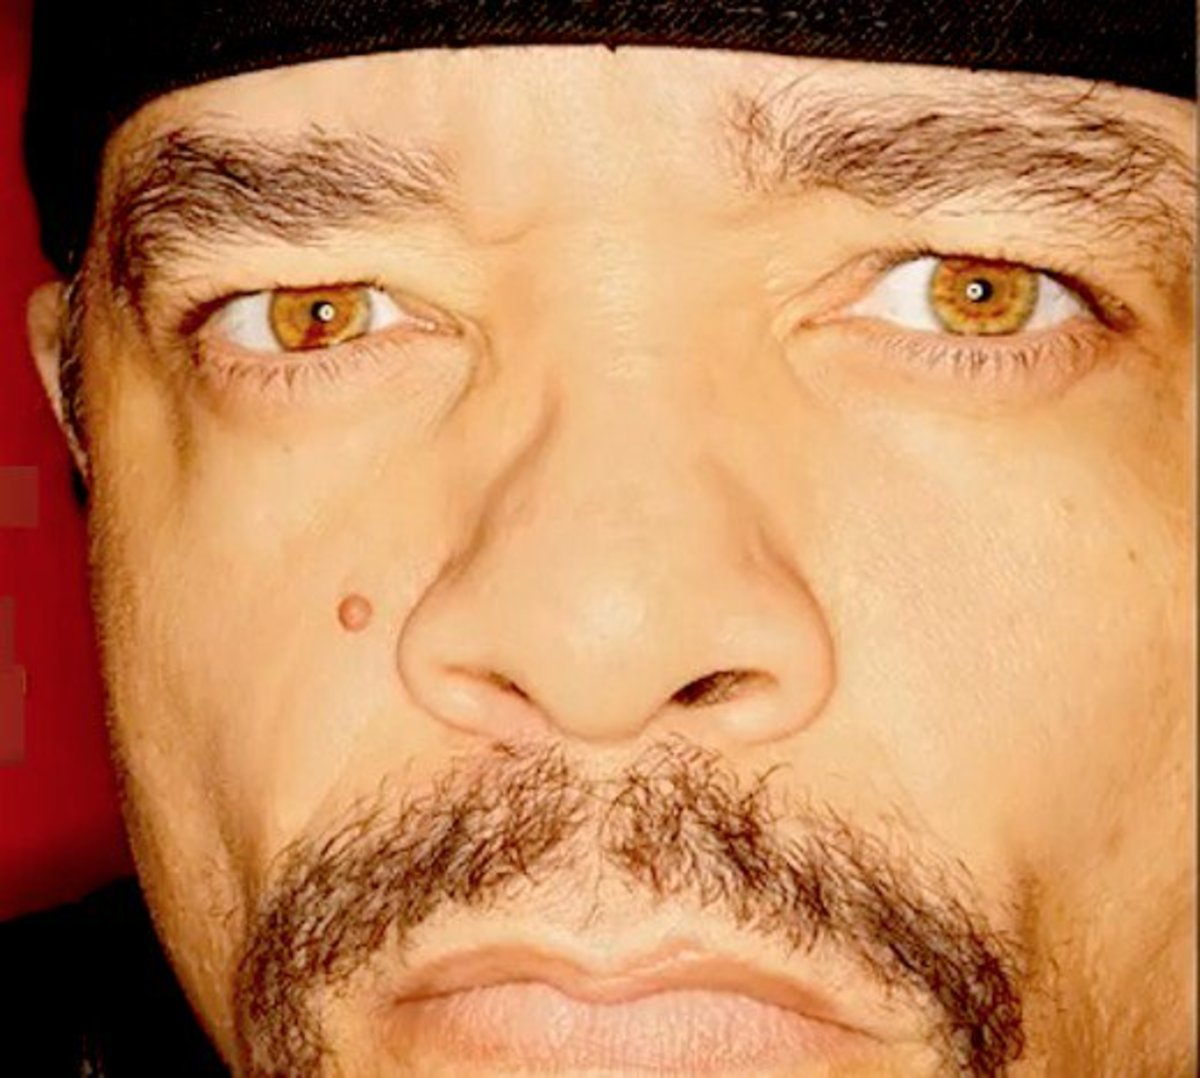 Ice-T -- Law & Order: SVU is another actor and famous orphan.